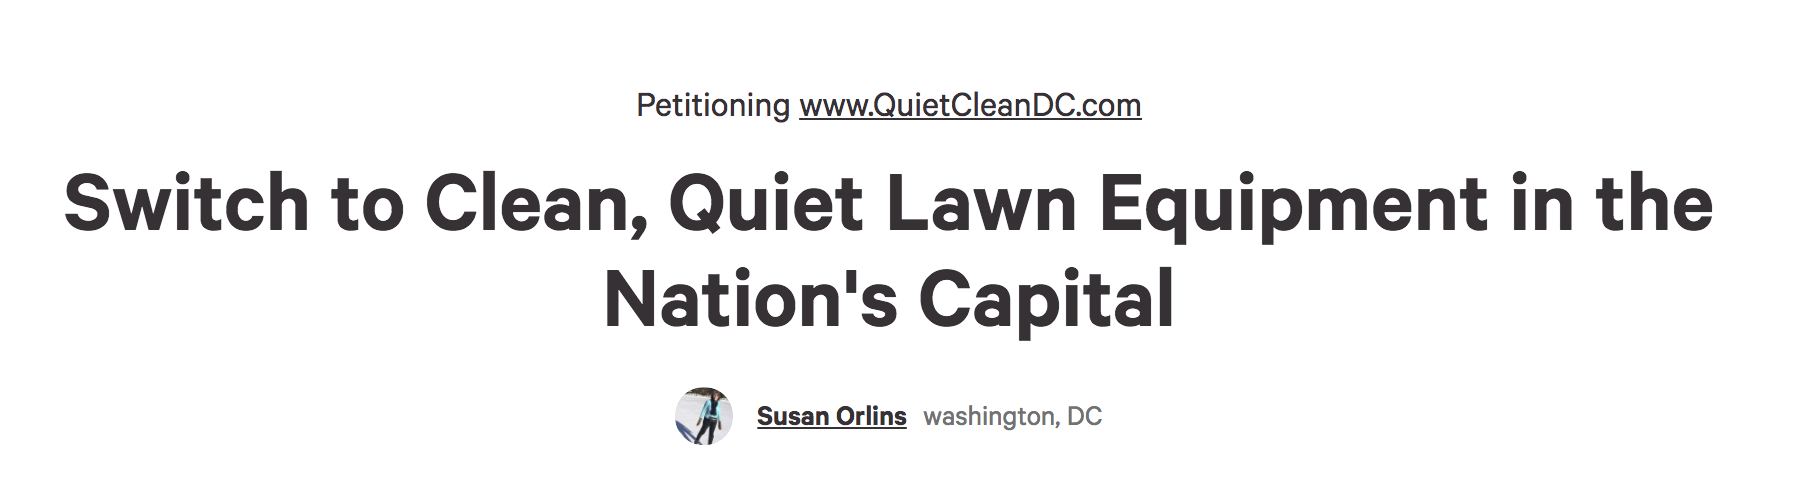 DC residents especially, and interested supporters from around the country,  can sign this petition  for hearings by the DC City Council on proposed legislation.